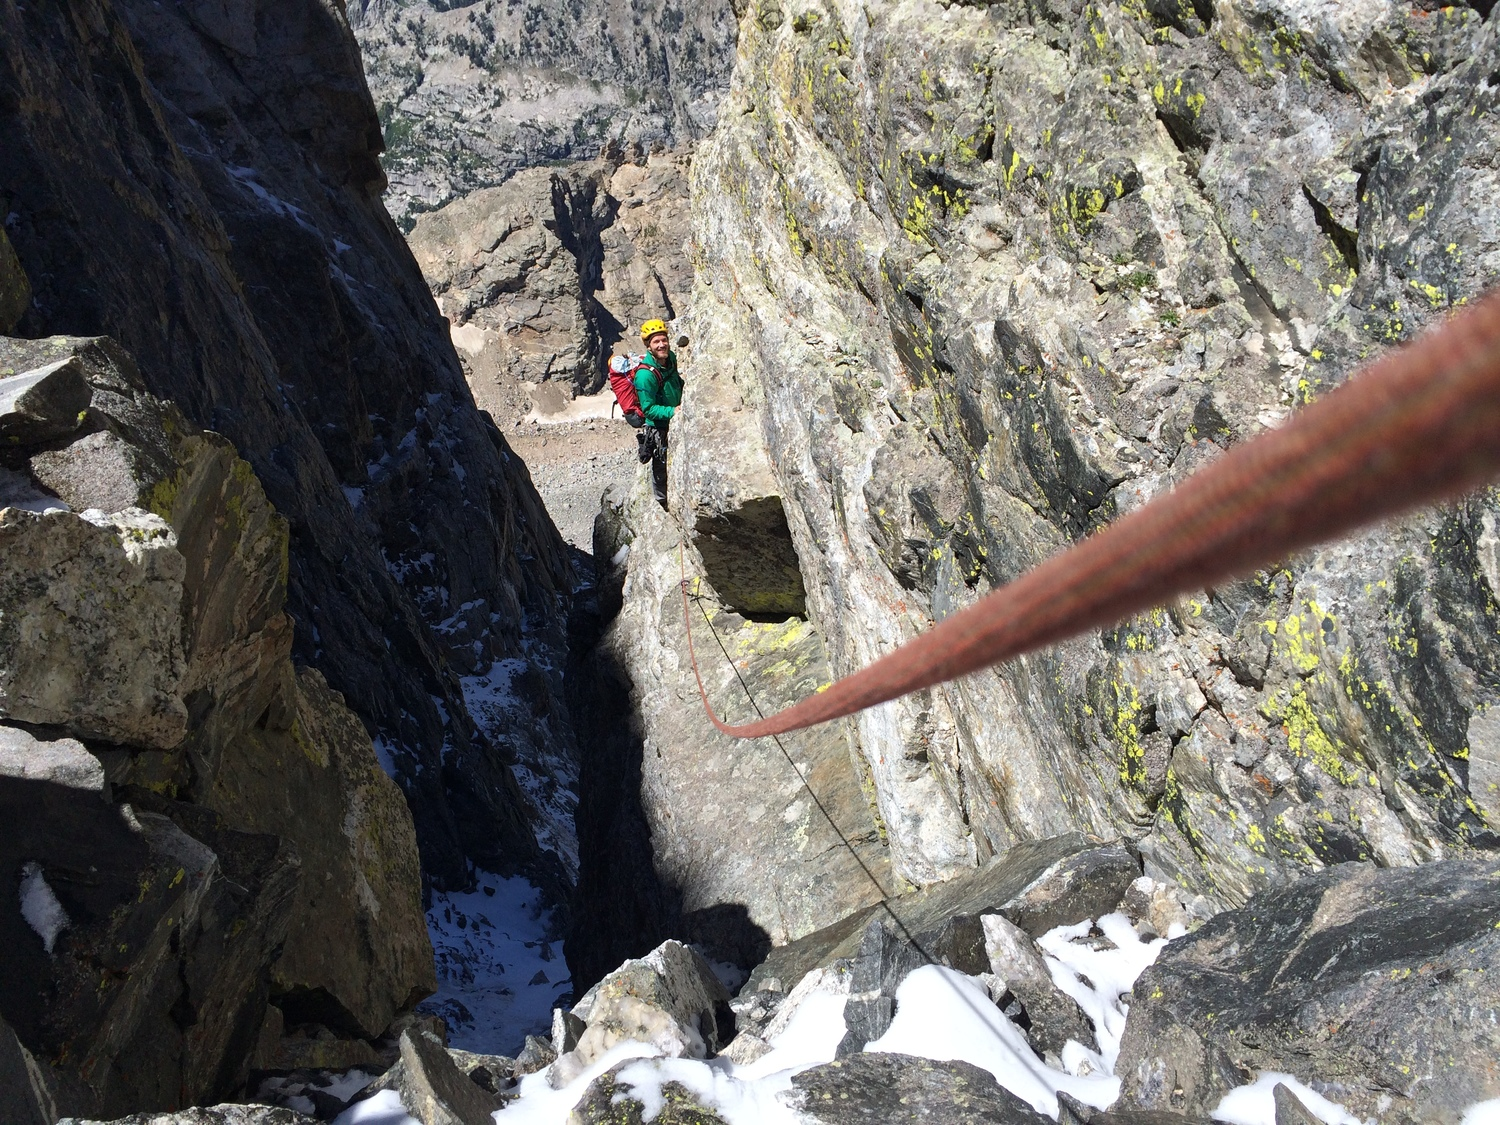 Incredibly exposed ledge traverse. The drop into the dark and scary notch was probably about 400 feet, but thats what ropes are for!